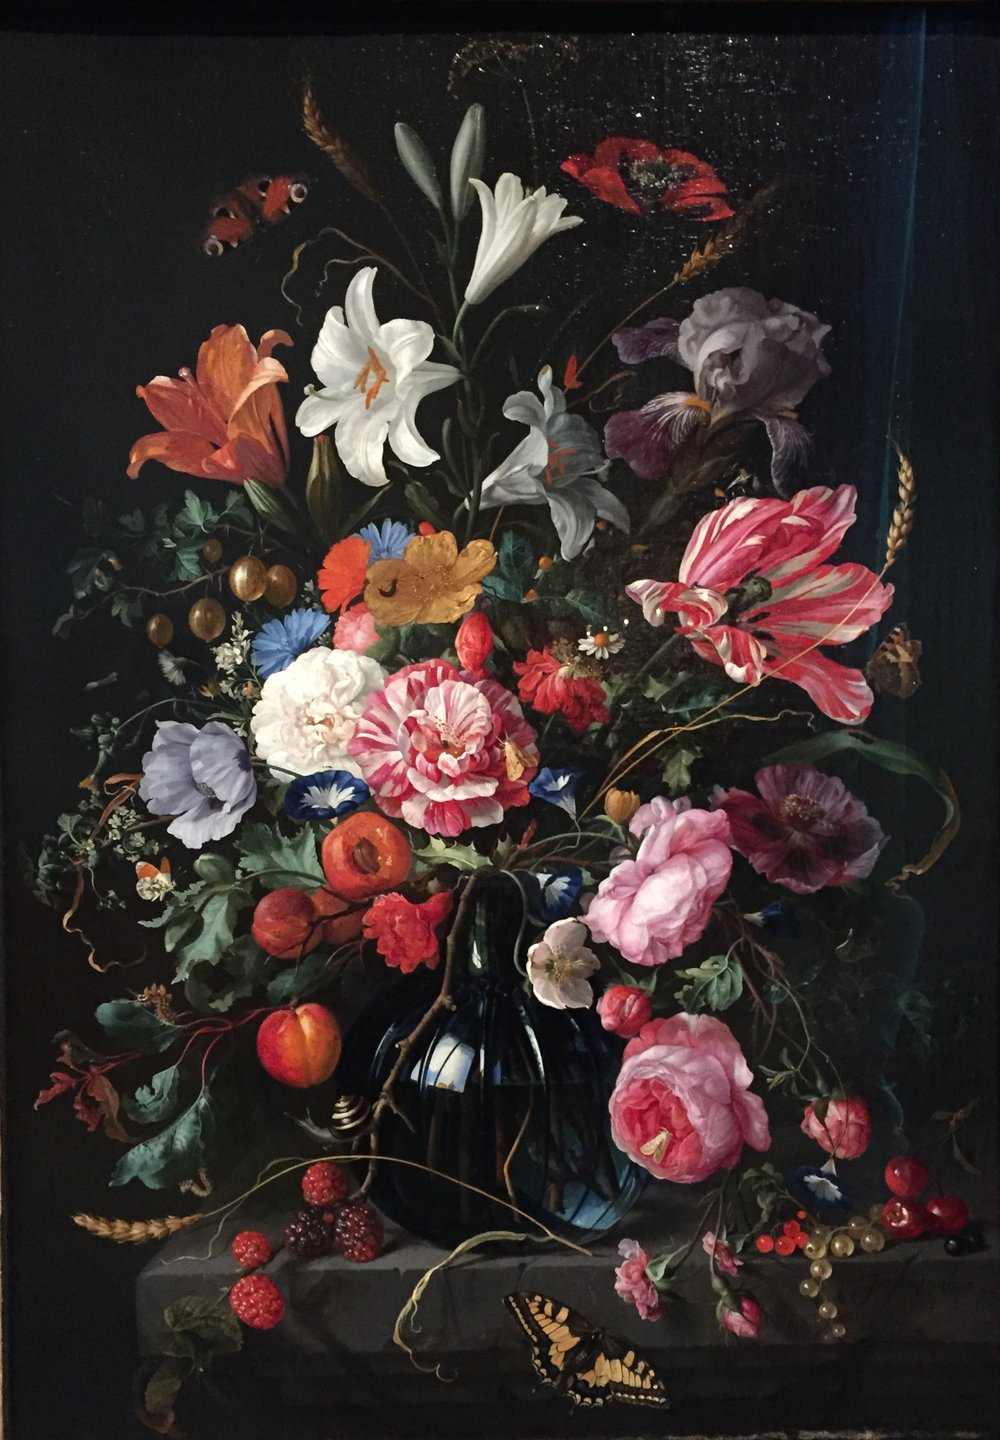 Vase of Flowers, by Jan Davidsz de Heem. 1670